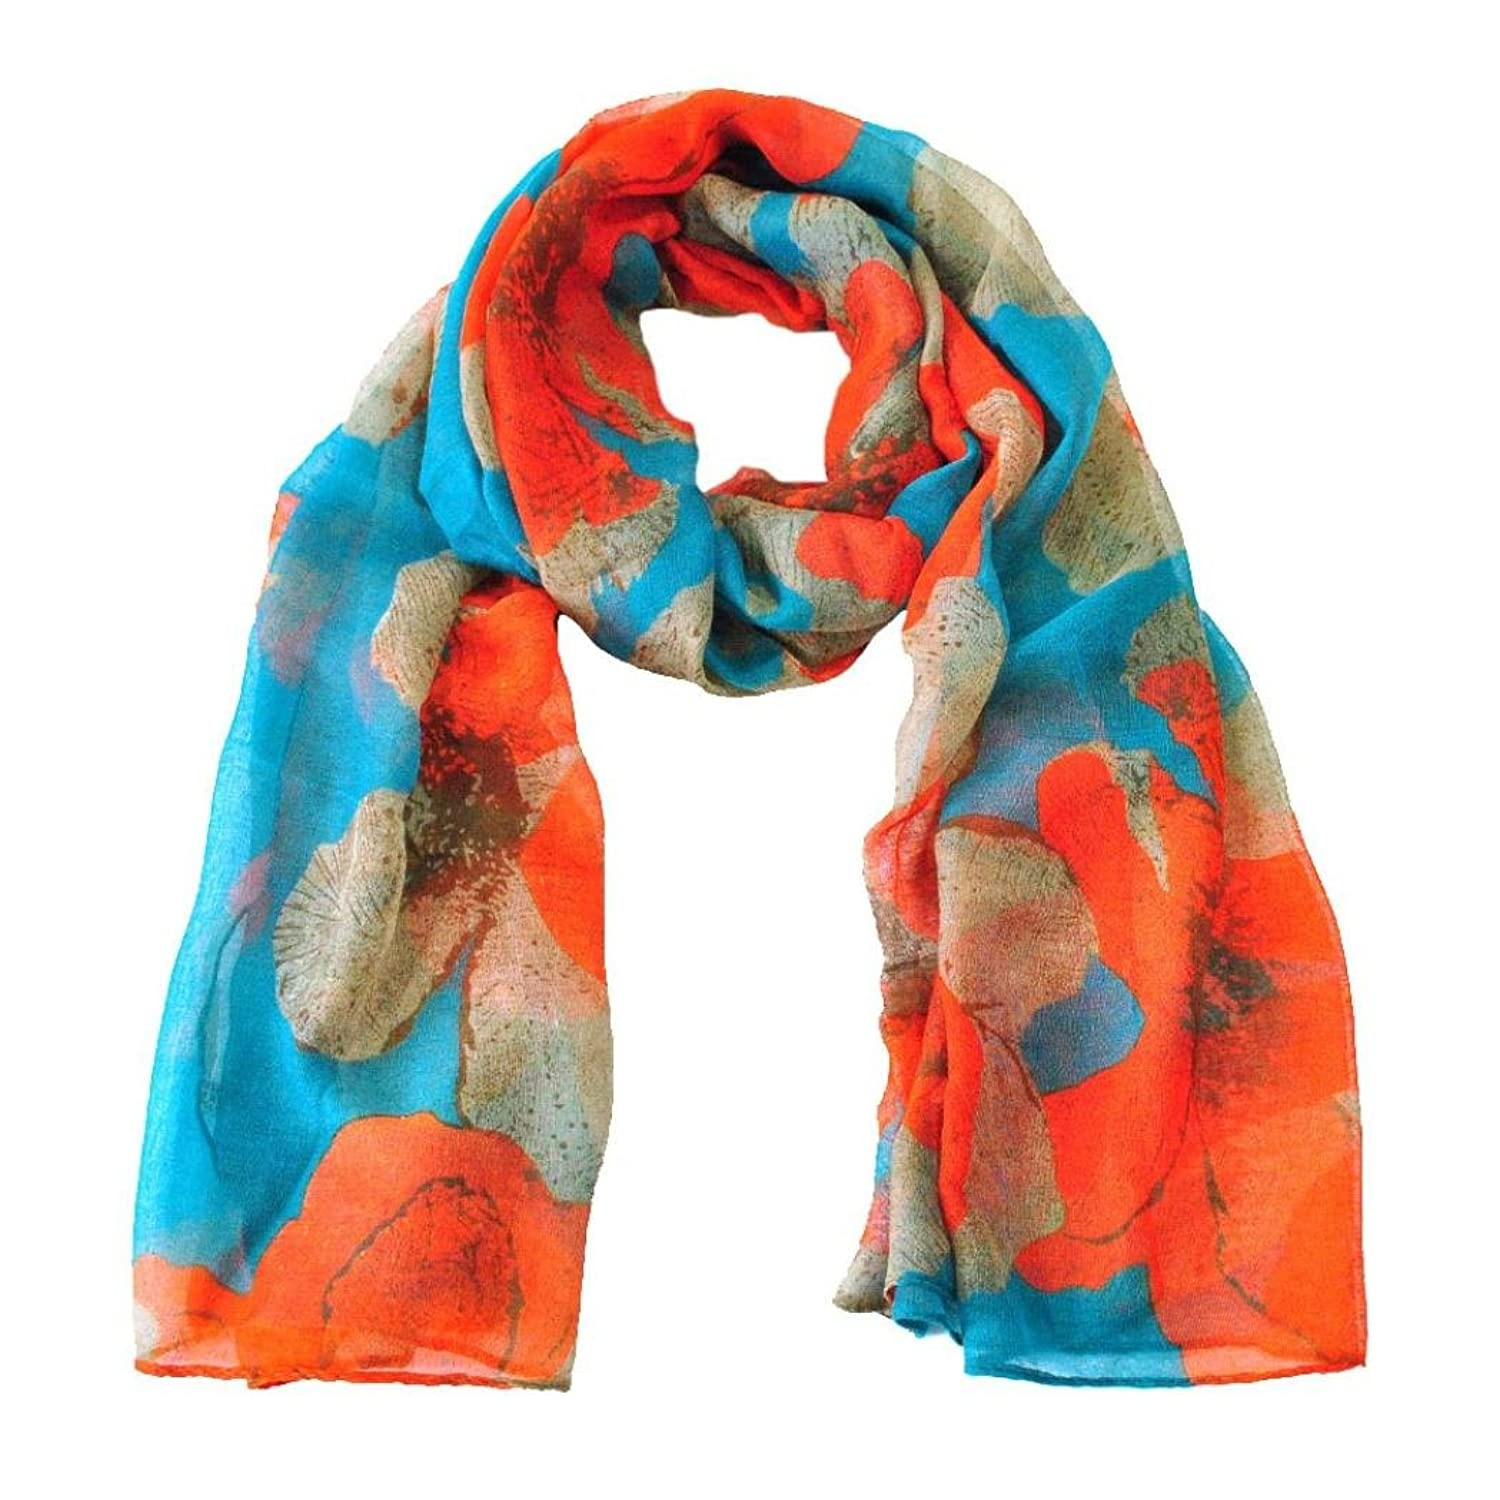 Womail 2017 Women Girls New Fashion Printed Cotton Flax Scarf Long Section Of Scarves